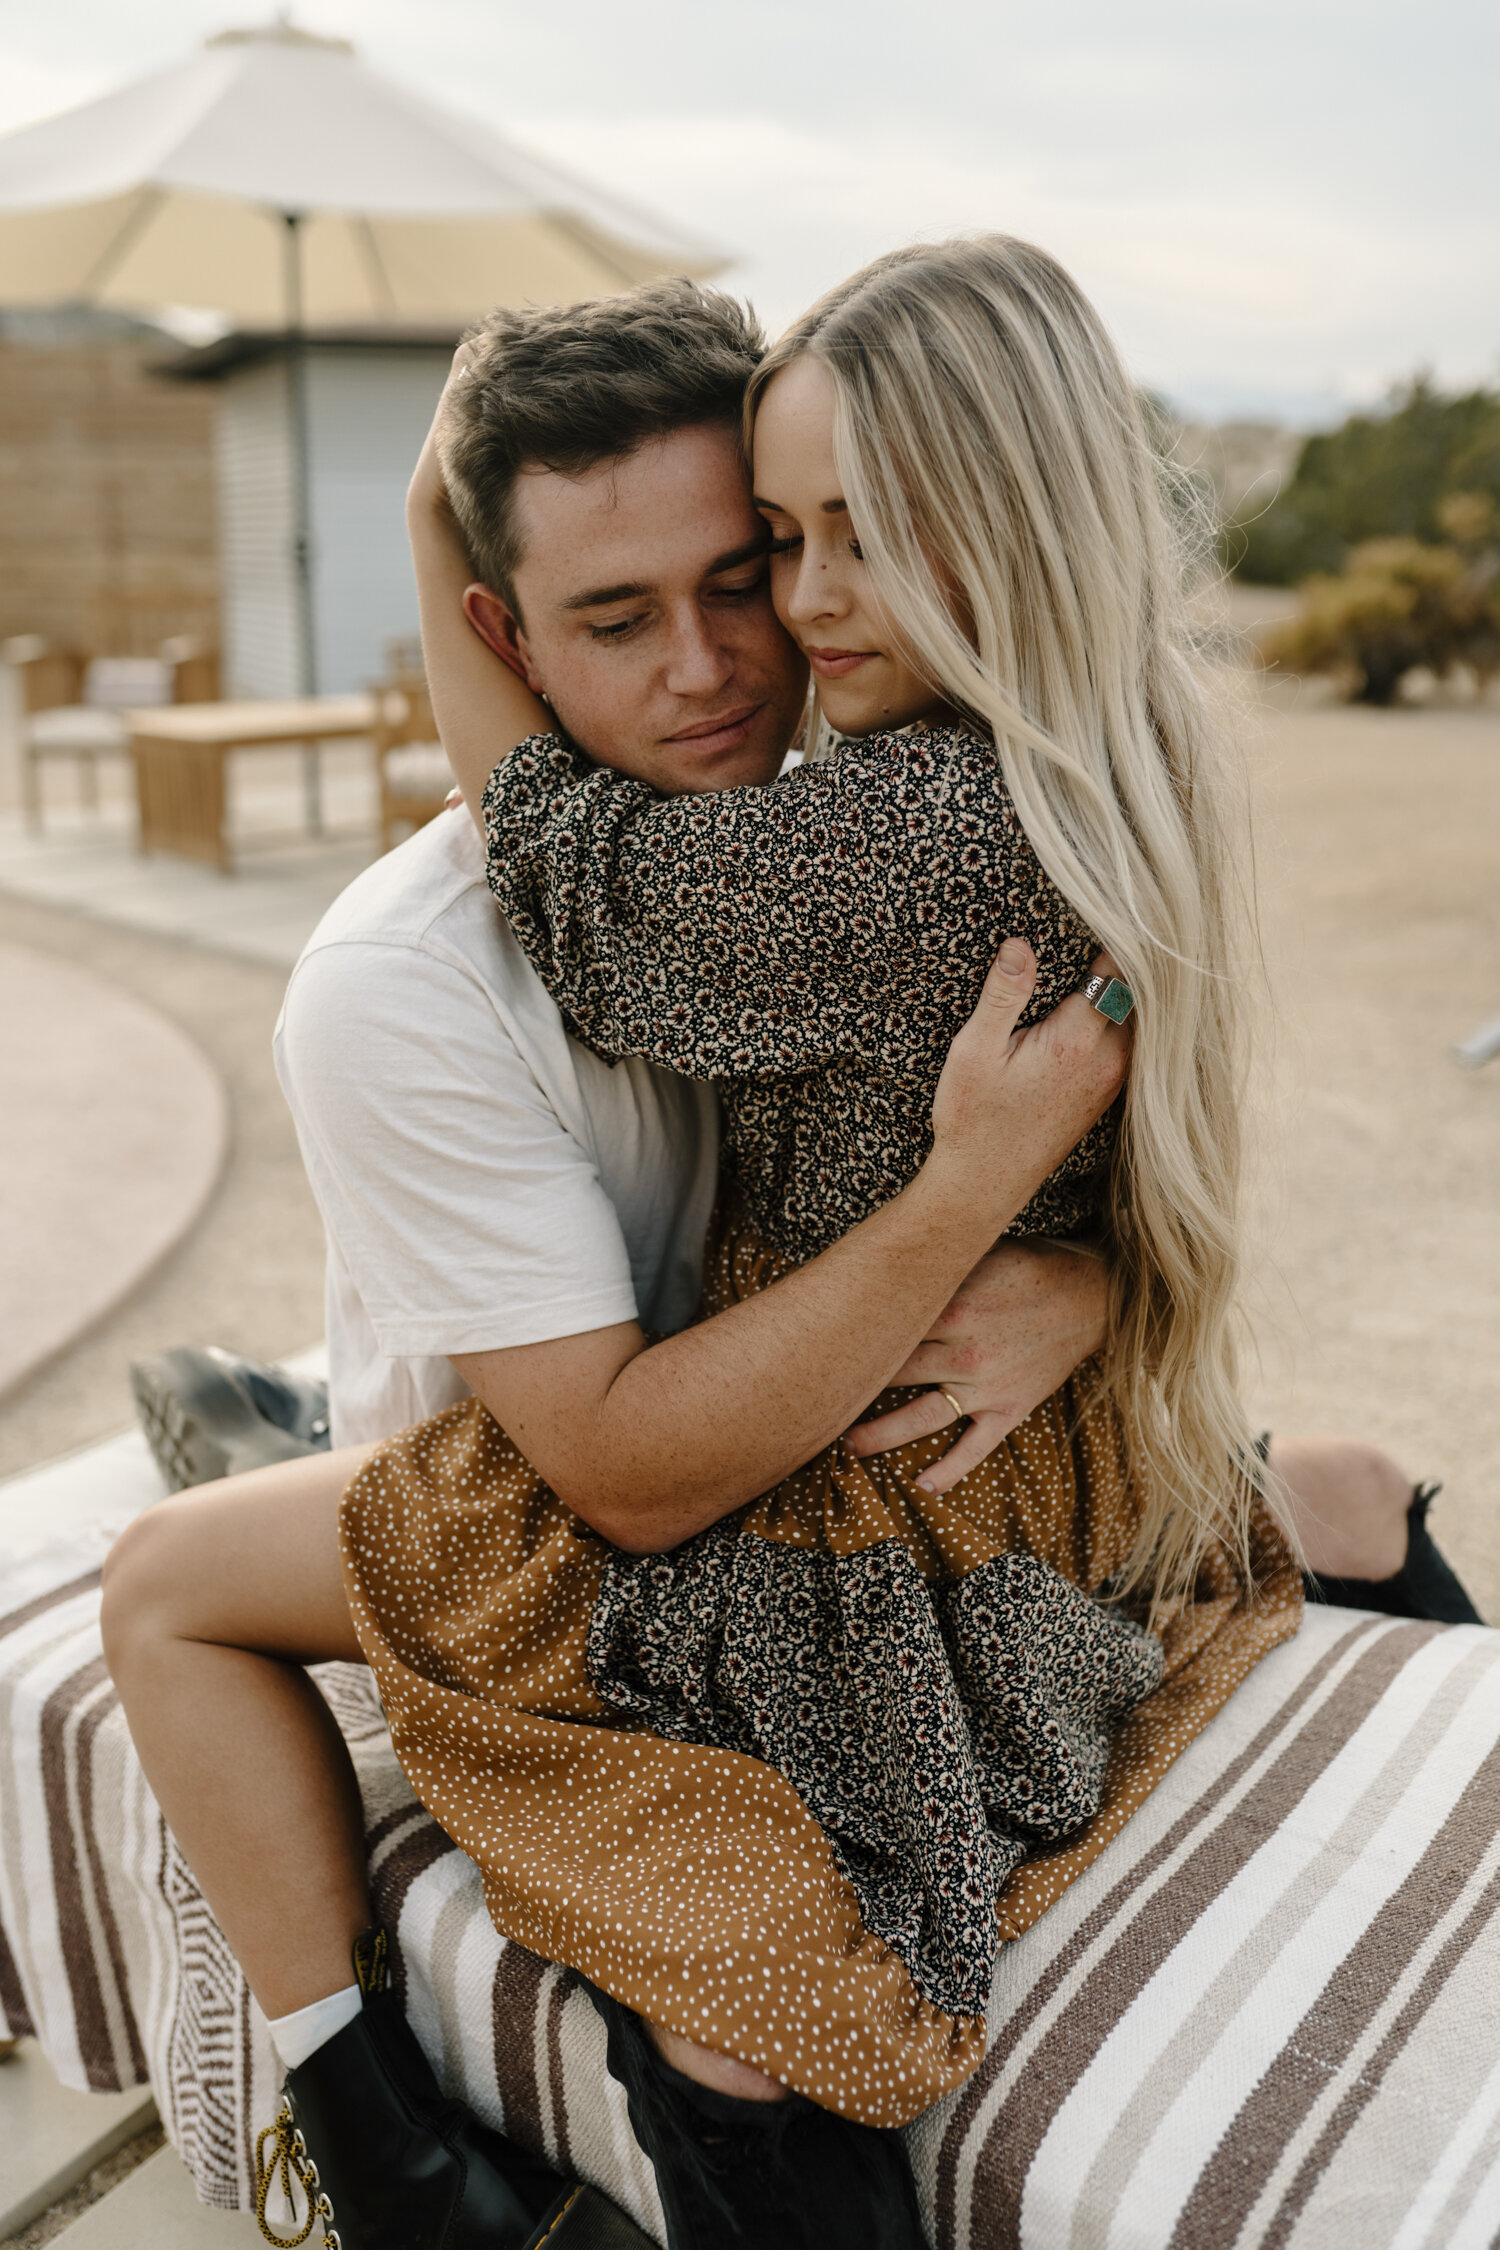 Intimate and Romantic engagement session in SoCal by Kayli LaFon Photography